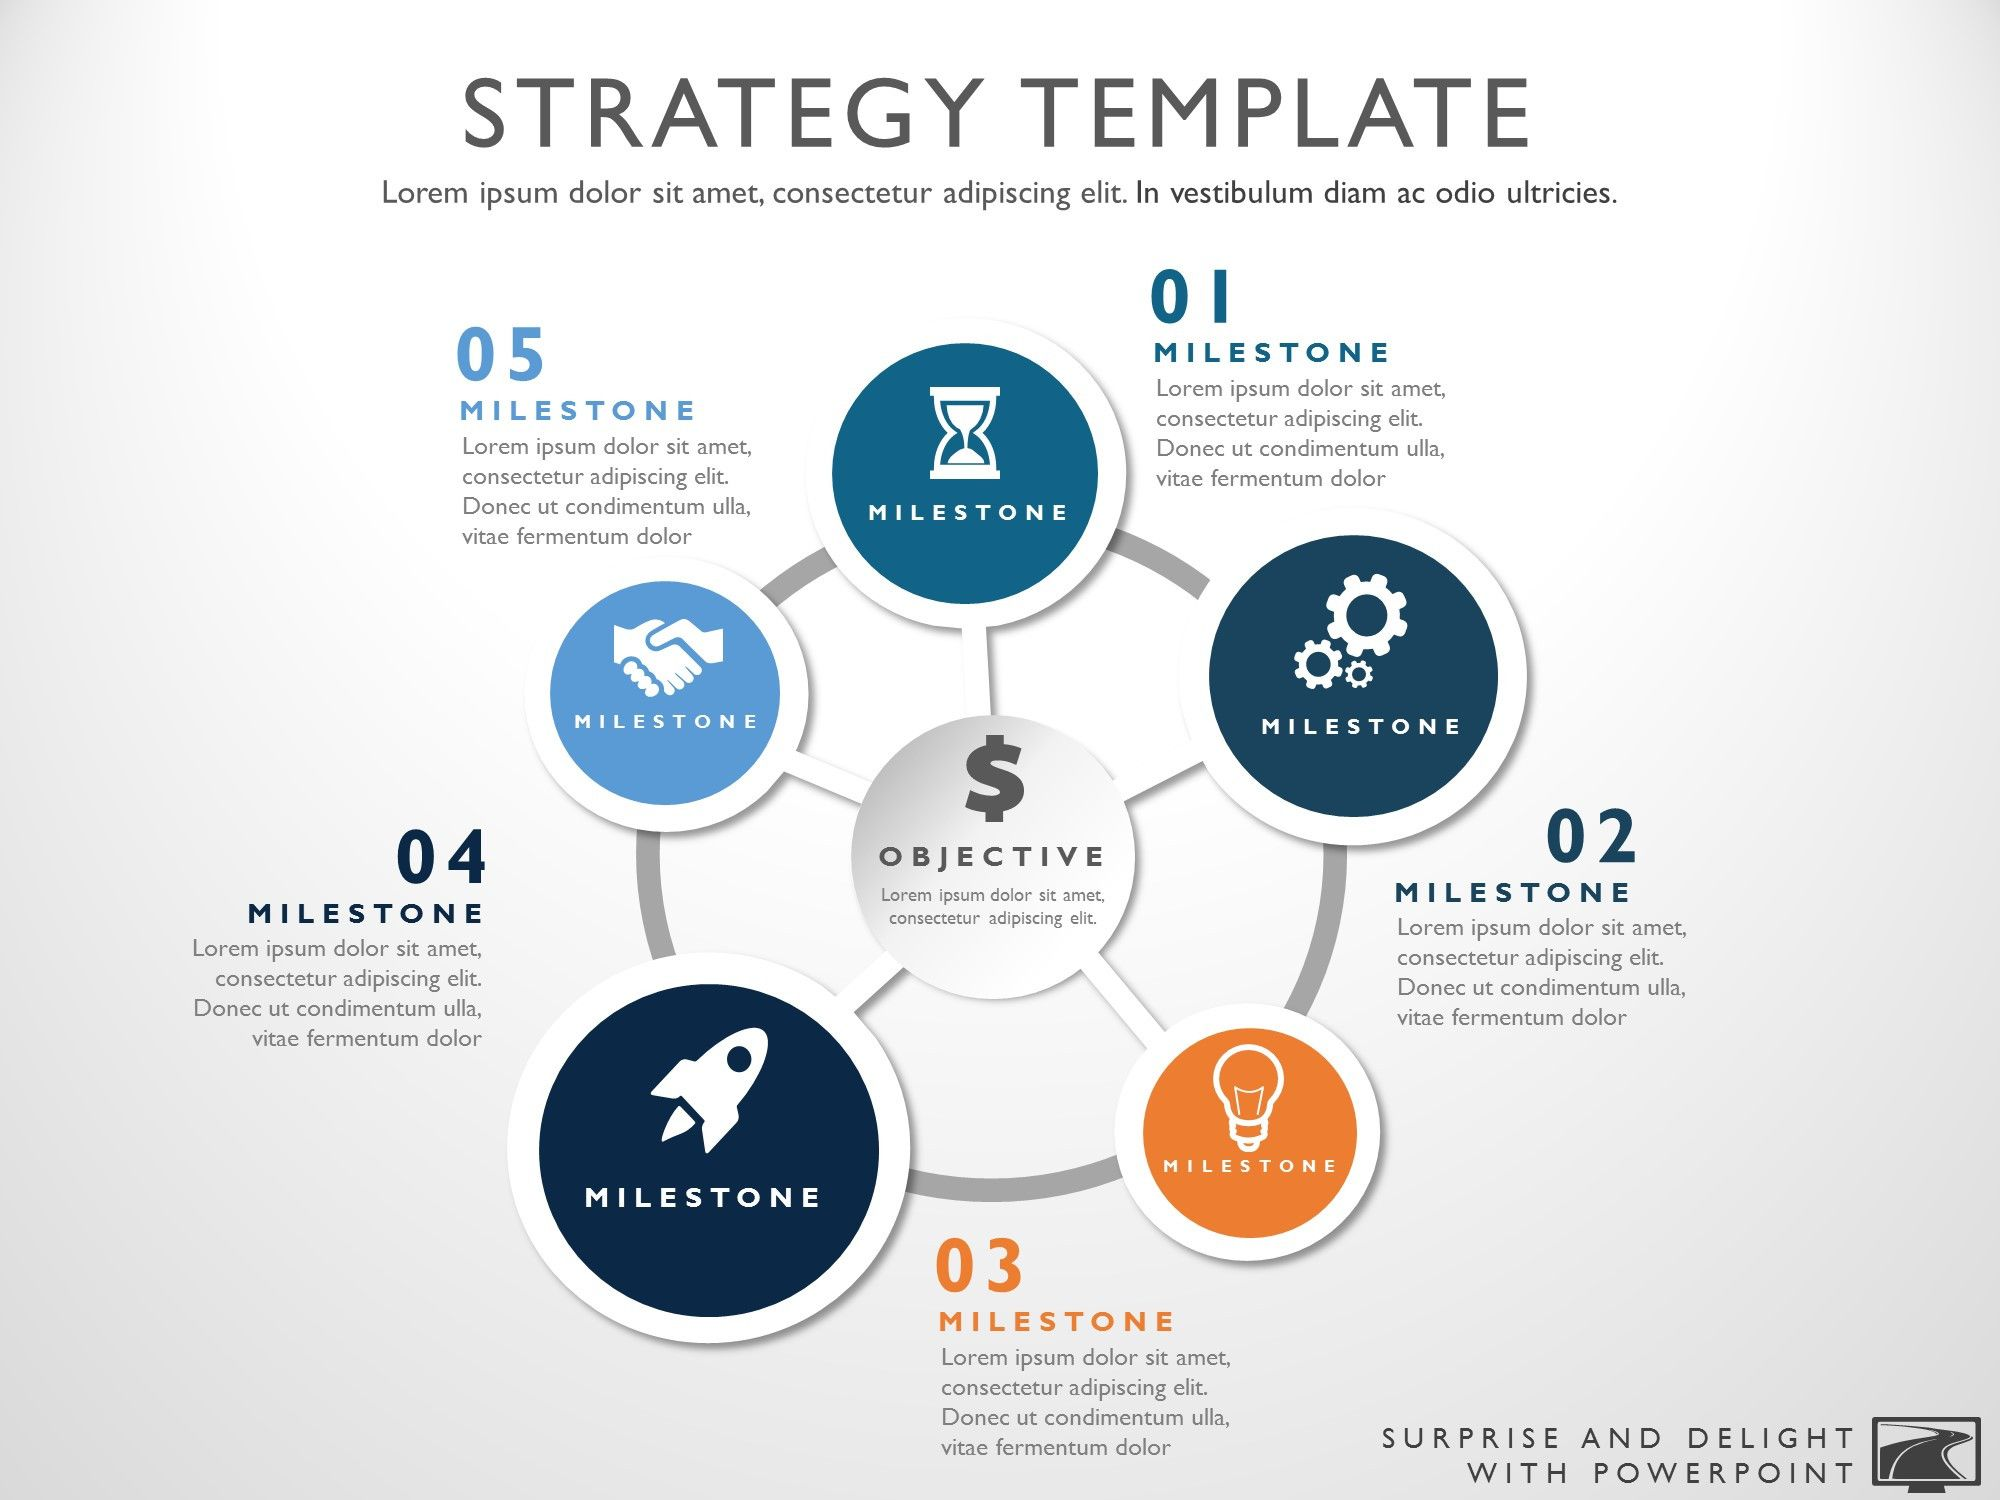 Product strategy template my product roadmap social innovation product strategy template my product roadmap pronofoot35fo Gallery